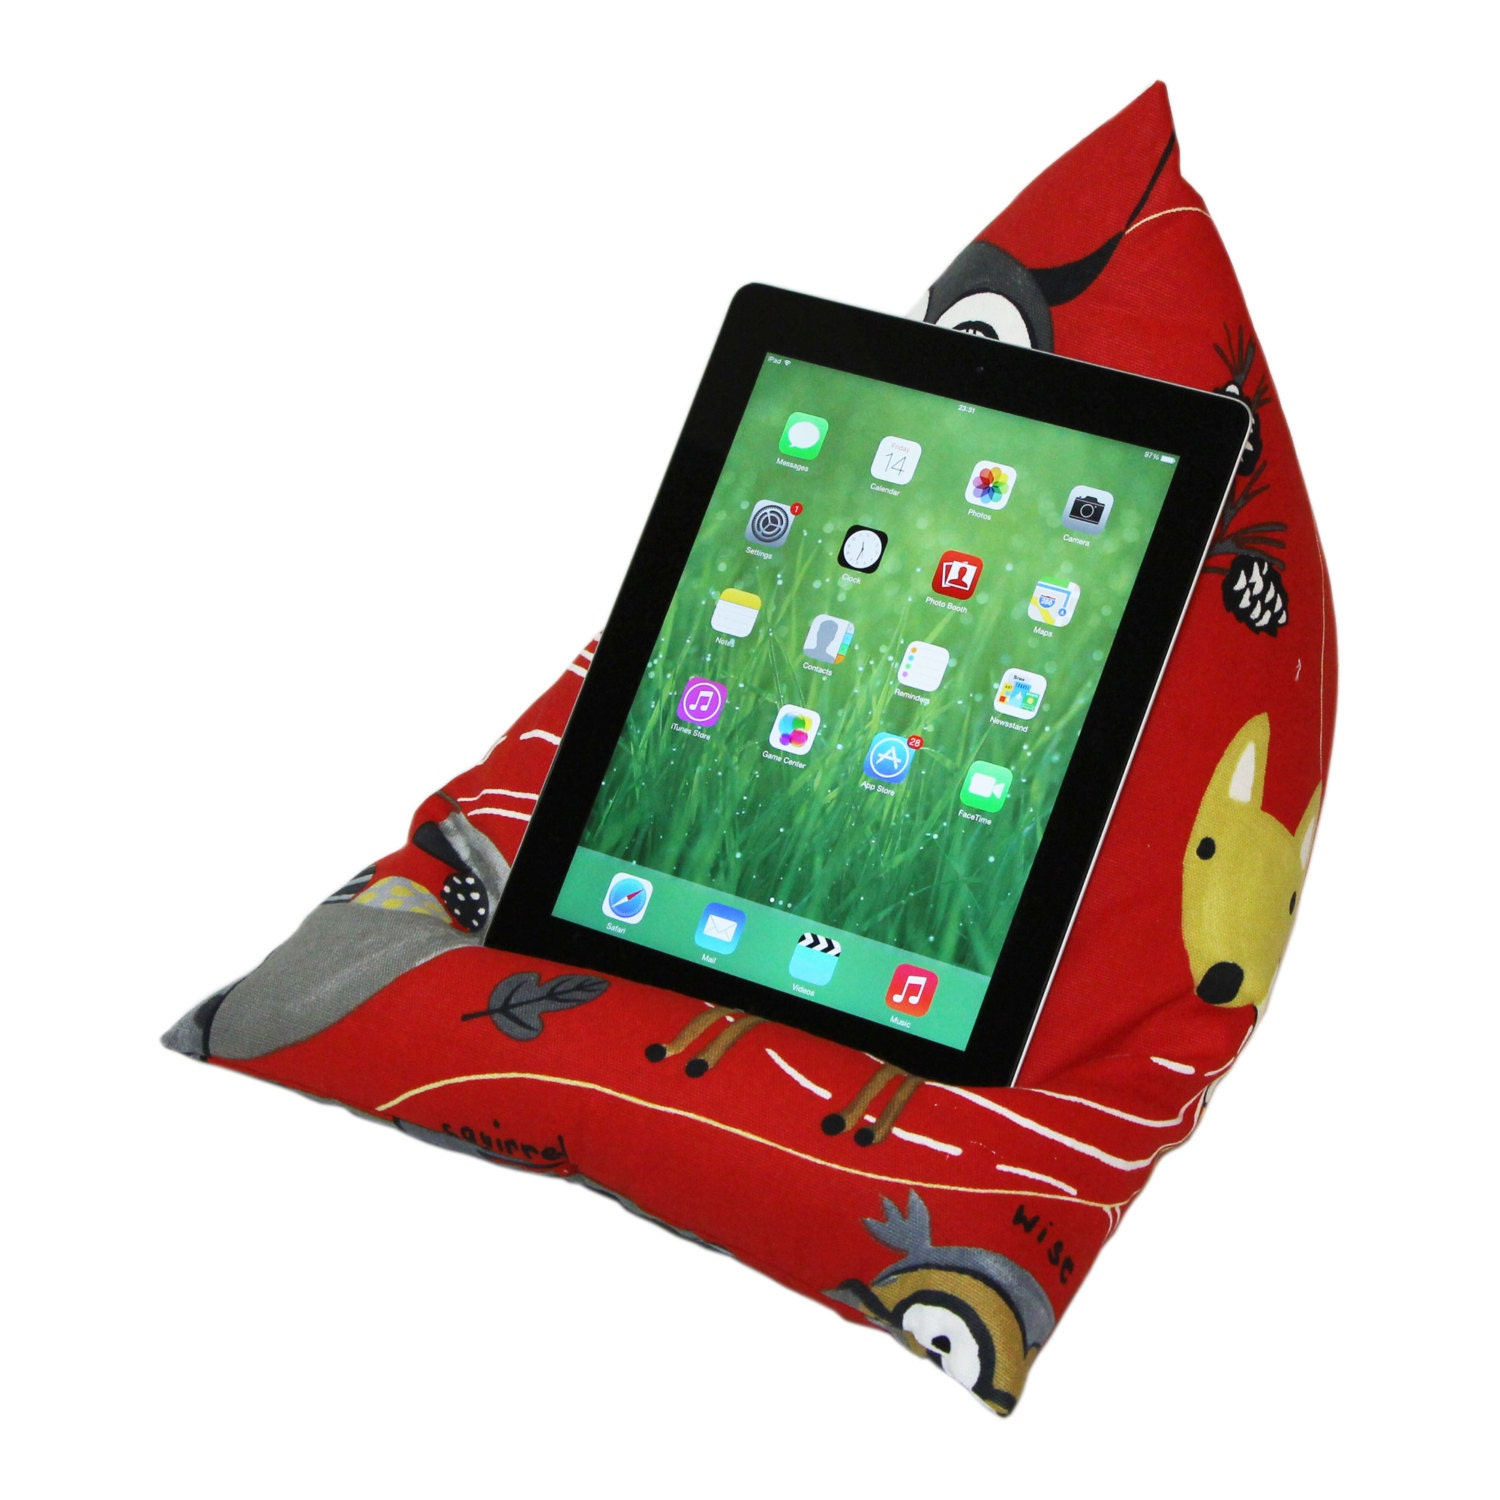 iPad / Tablet Cushion Stand Pillow Holder by eBeanCushions